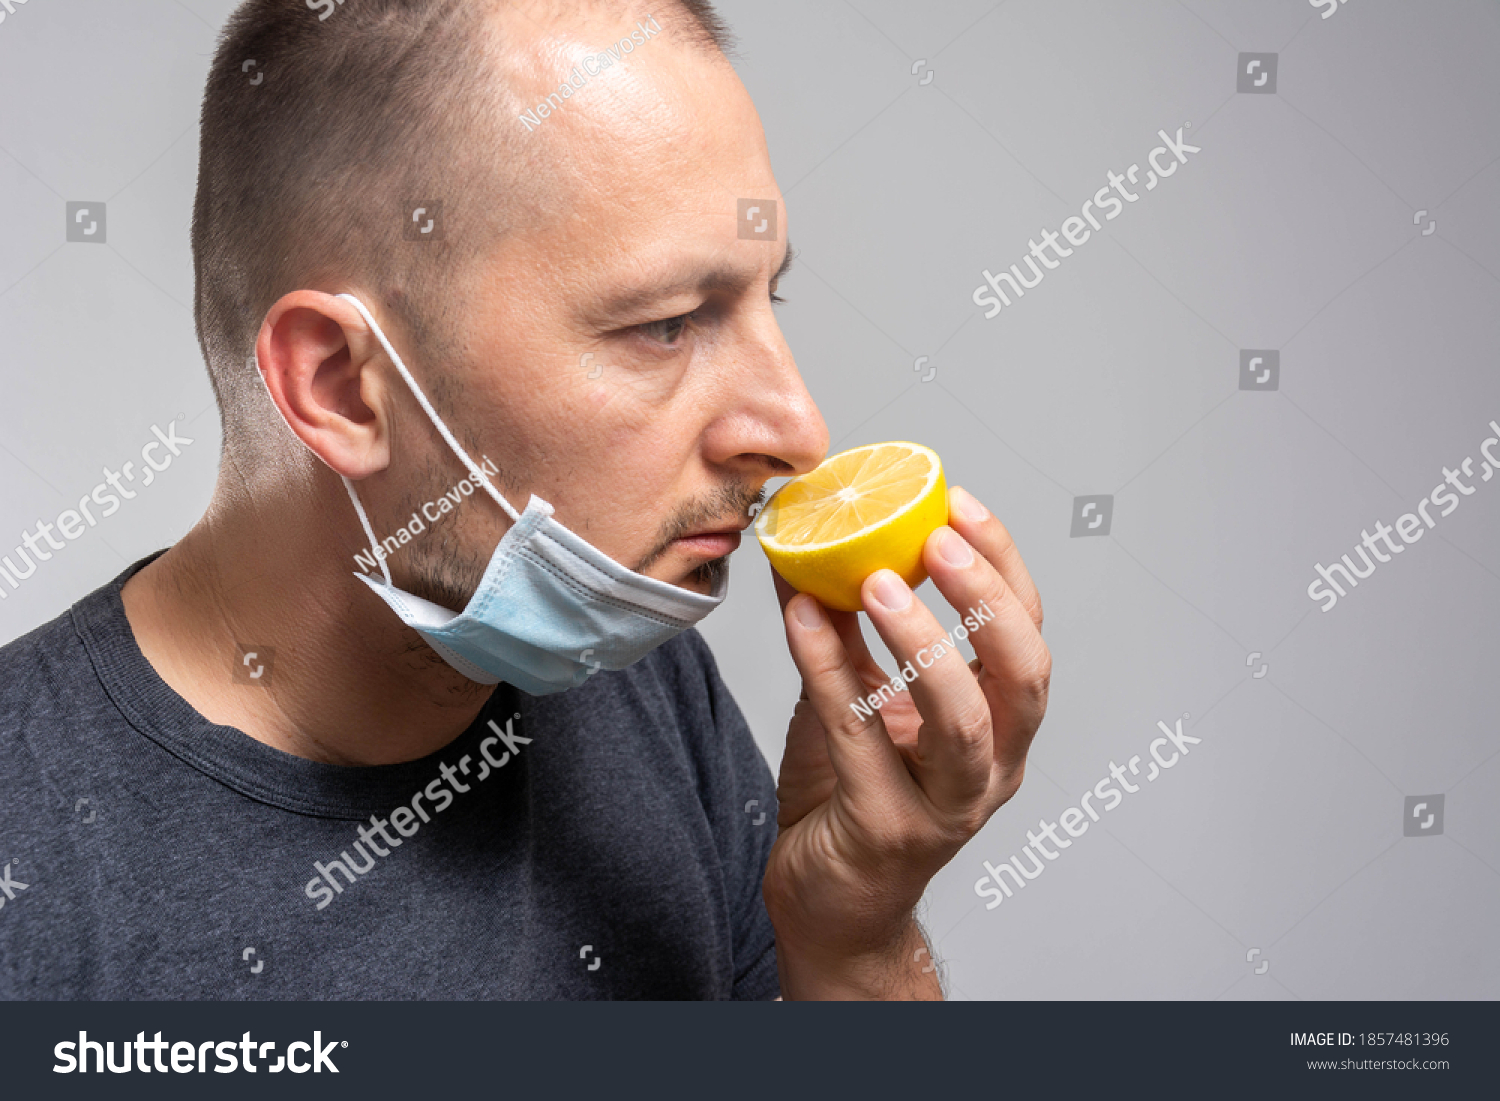 Anosmia or smell blindness, loss of the ability to smell, one of the possible symptoms of covid-19, infectious disease caused by corona virus. Man Trying to Sense Smell of a Lemon #1857481396